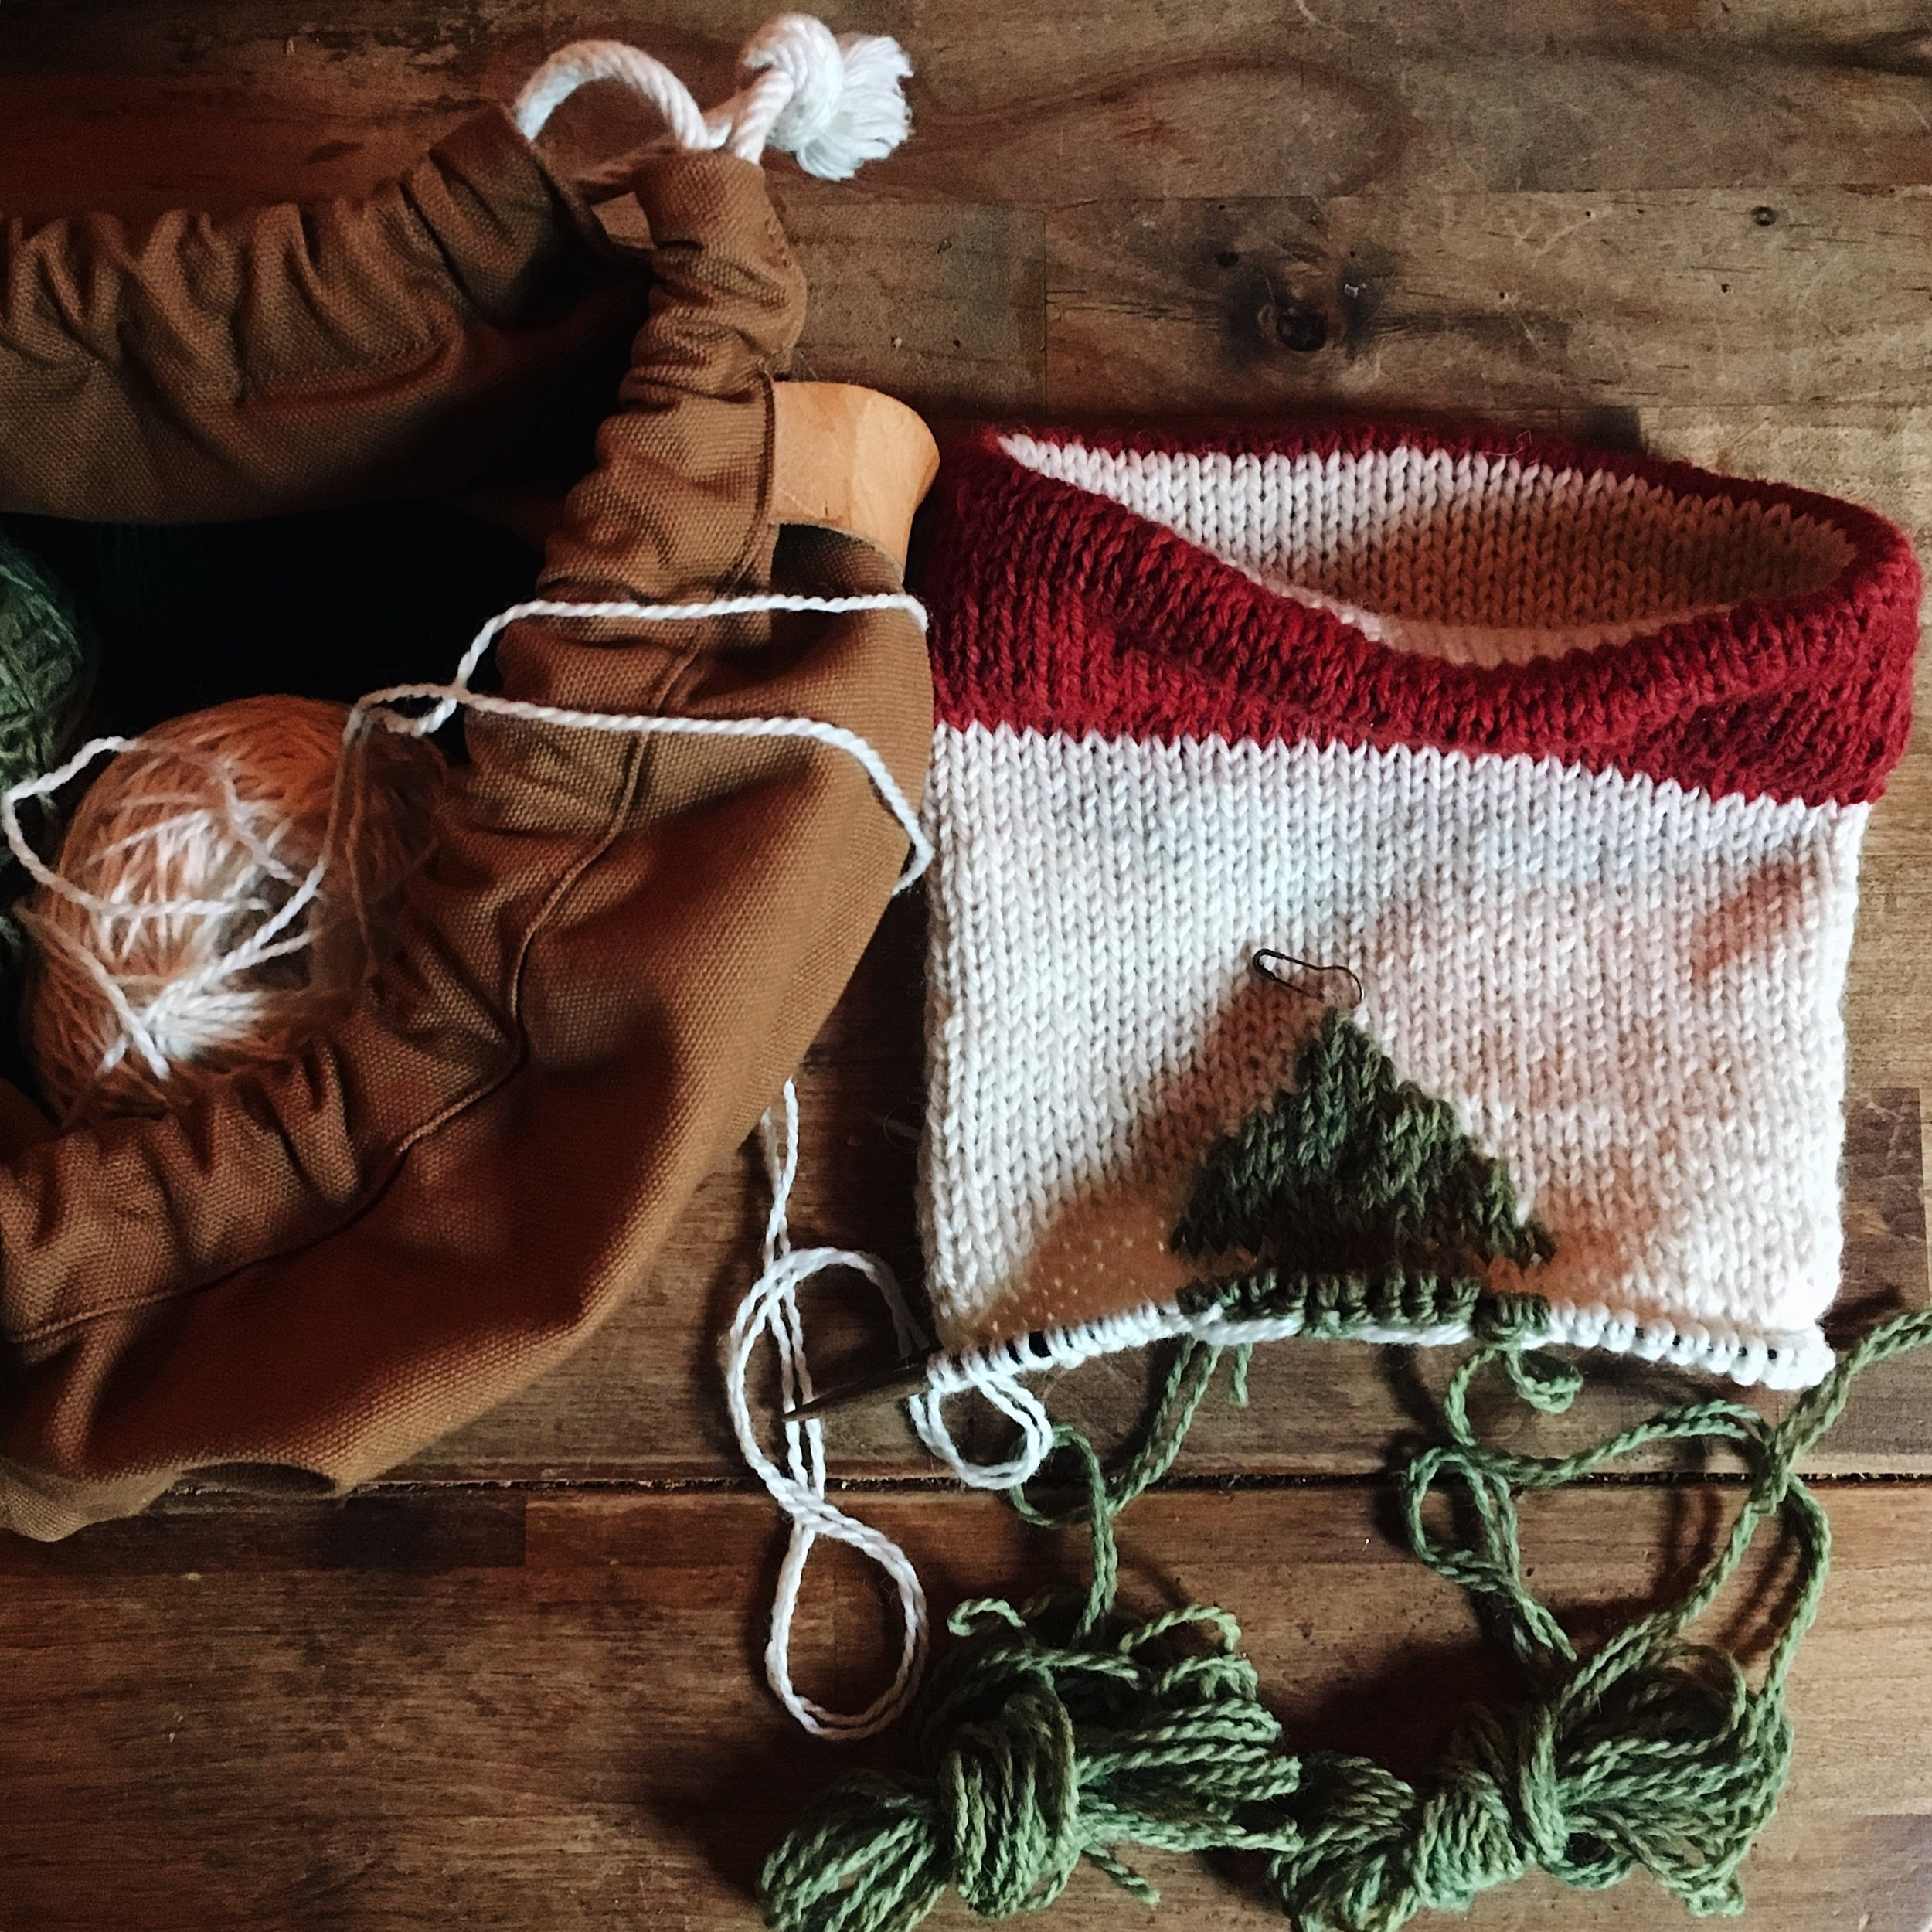 Natural Dyed Wool Christmas Stocking Image by Samantha Spigos